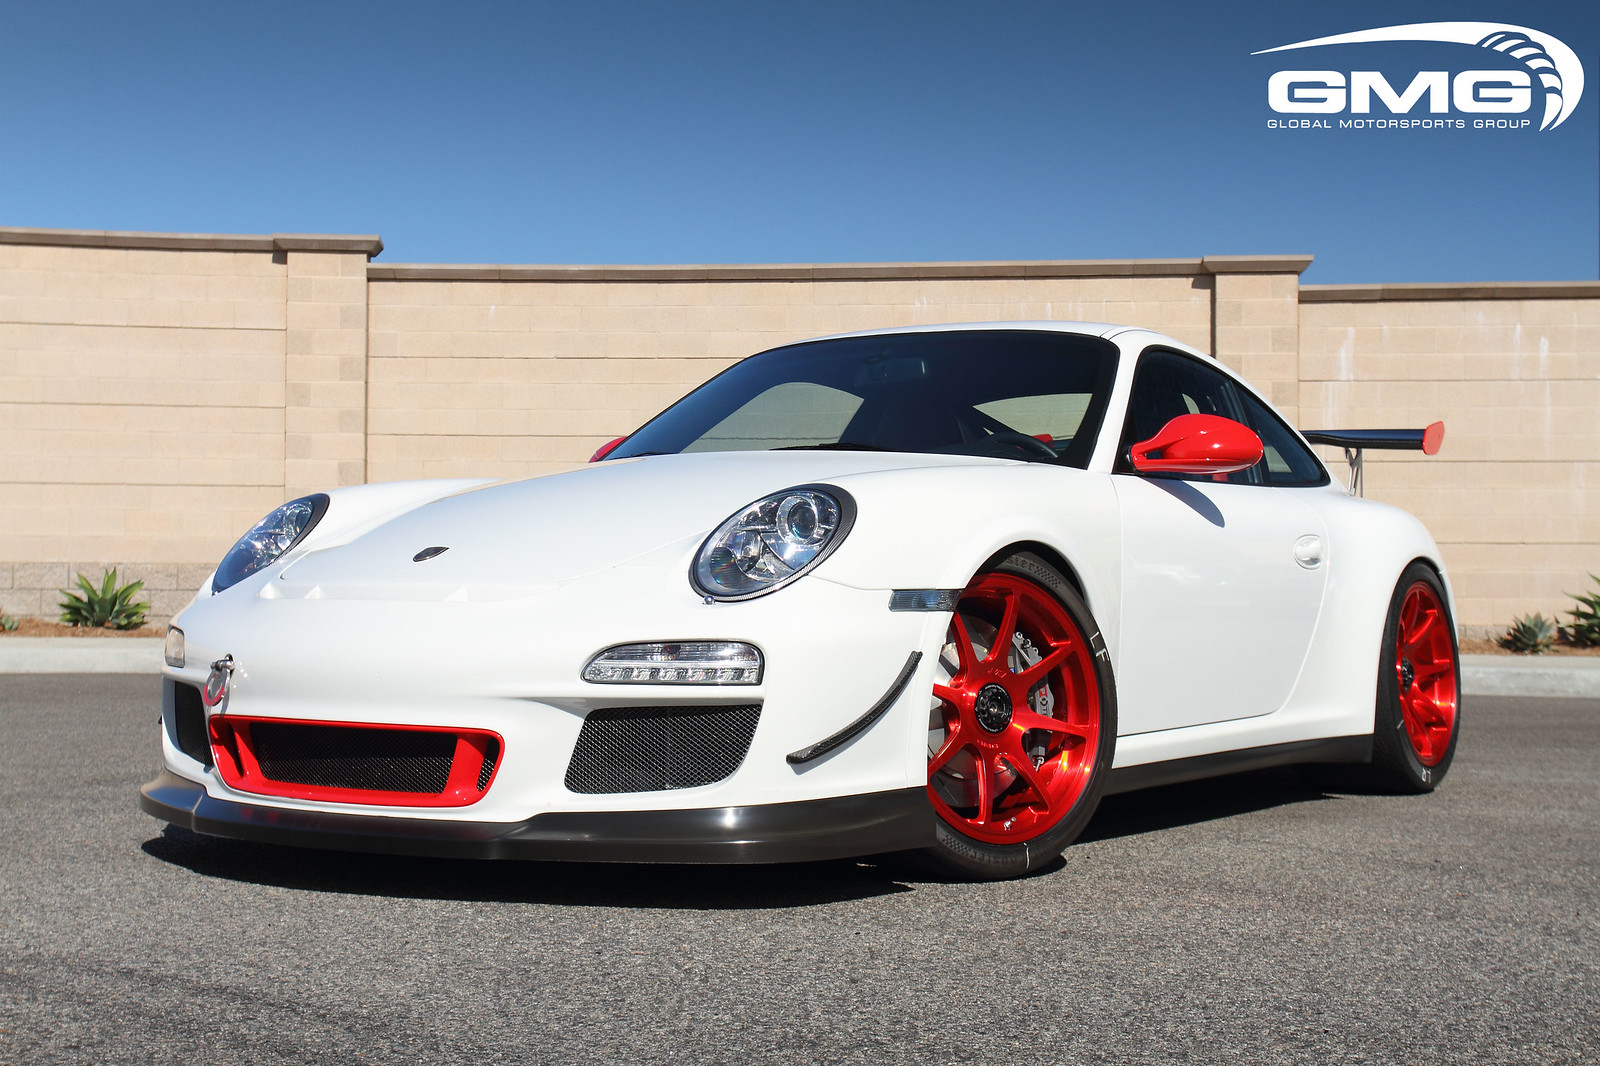 The Perfect Exposure Gmg Racing Porsche 997 2 Gt3rs W